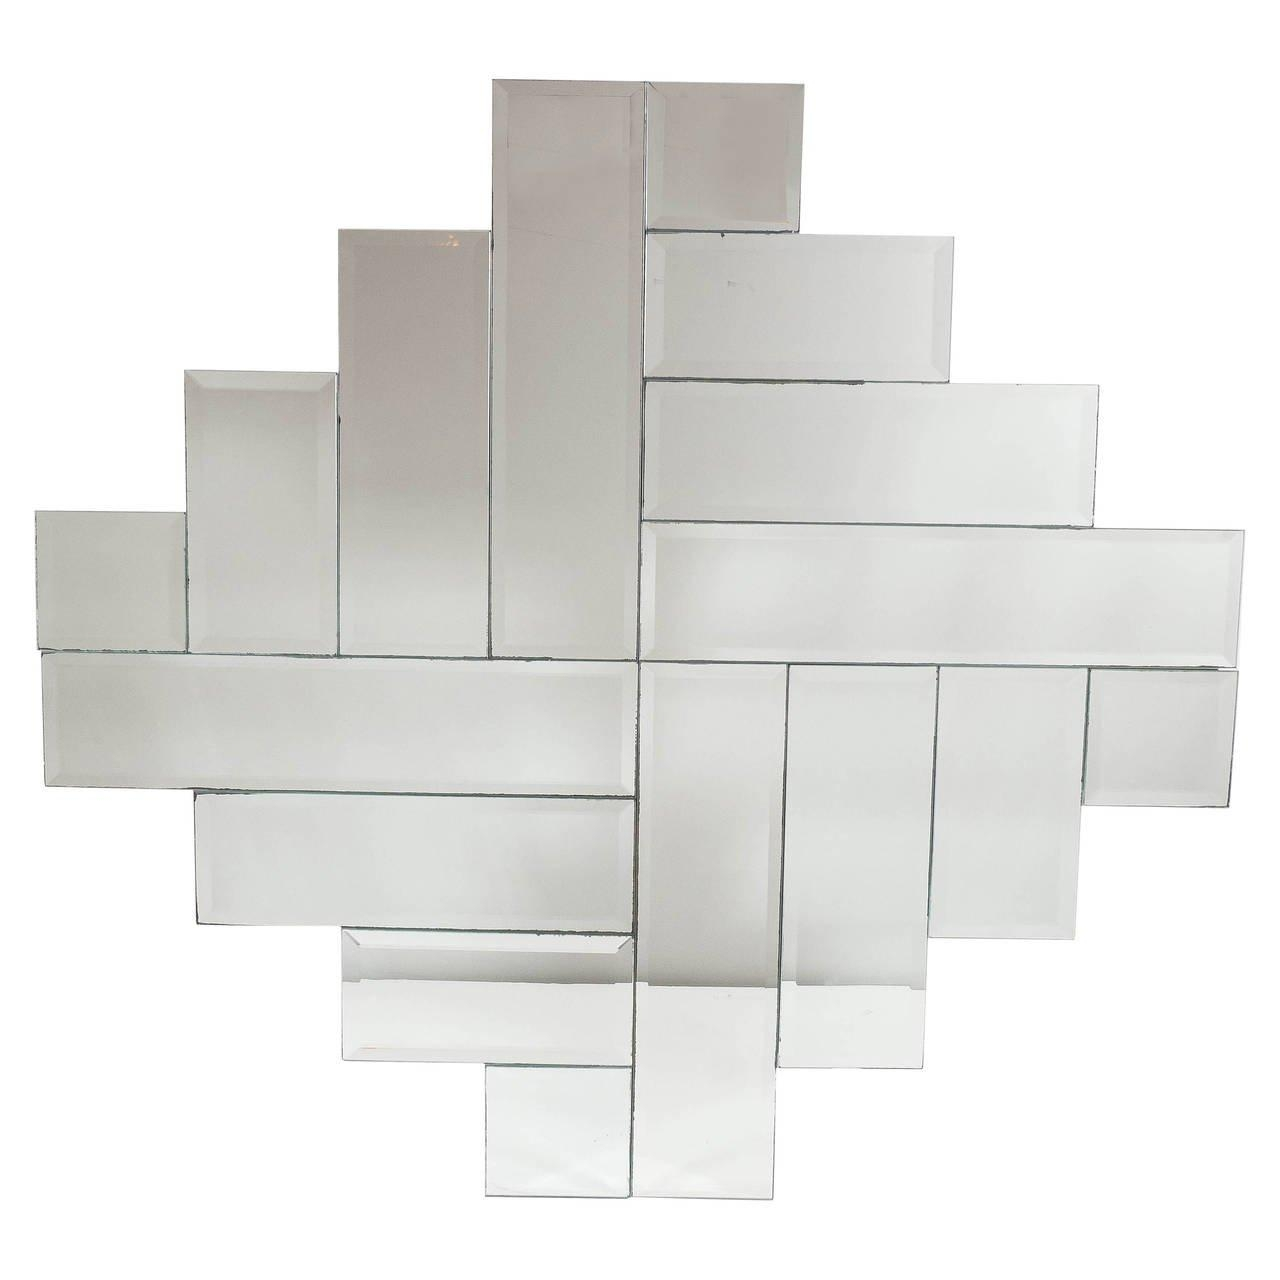 Mid Century Modernist Art Deco Style Stepped Geometric Form With Regard To Art Deco Style Mirrors (View 16 of 20)